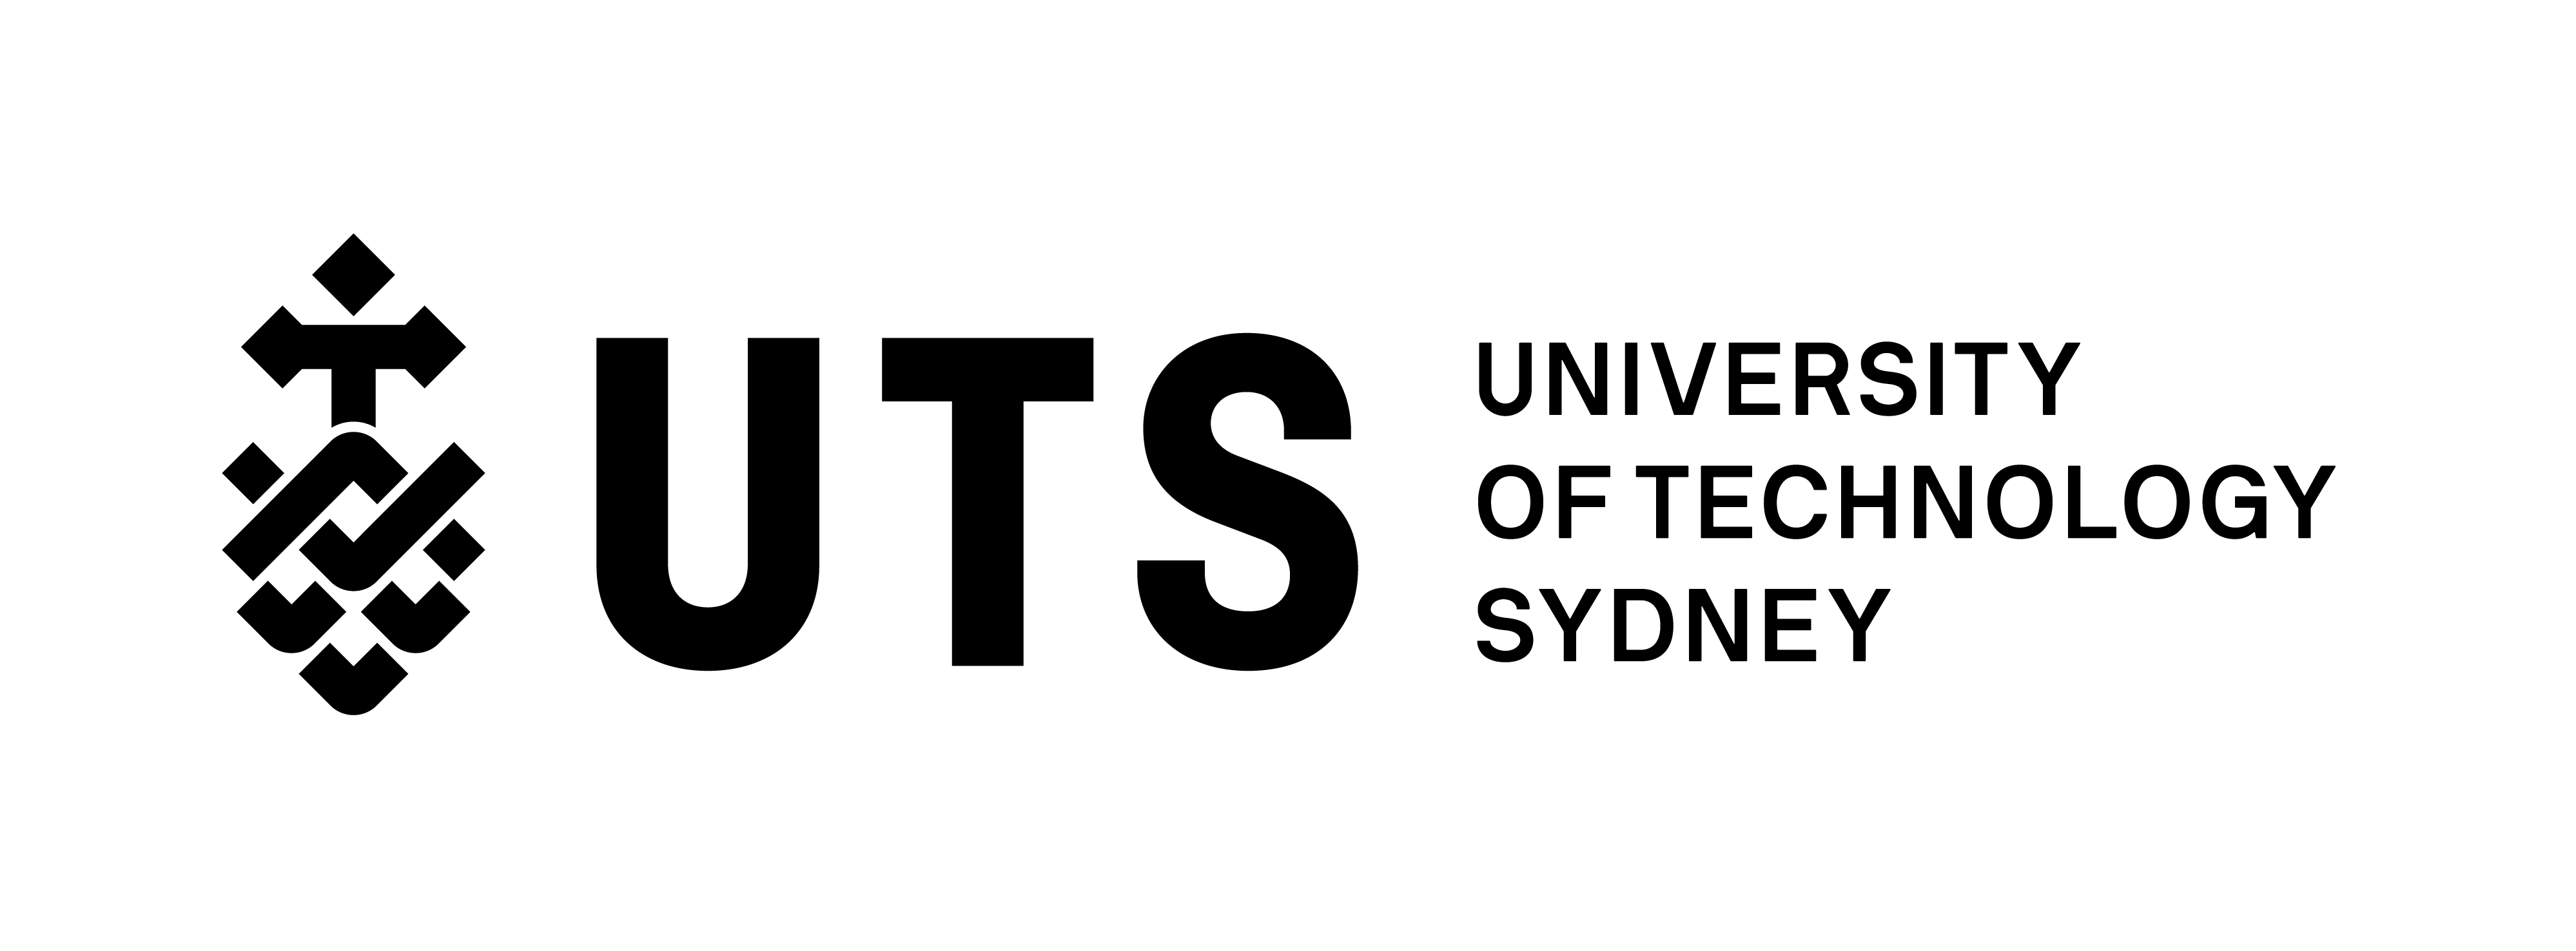 University of Technology Sydney - Bachelor of Business / Bachelor of Science in Information Technology